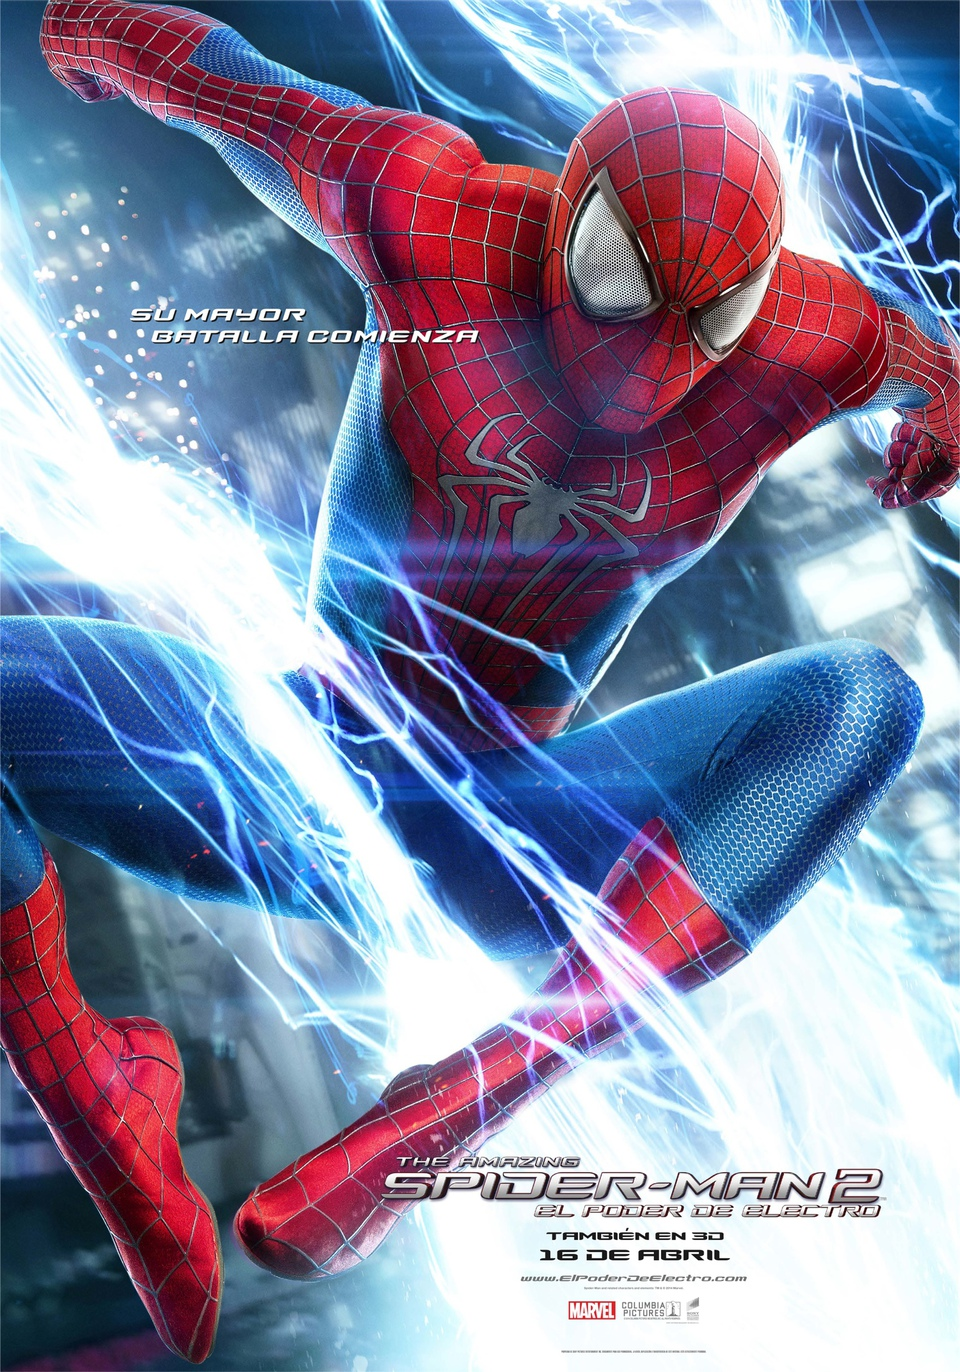 THE AMAZING SPIDER-MAN 2. EL PODER DE ELECTRO DIGT